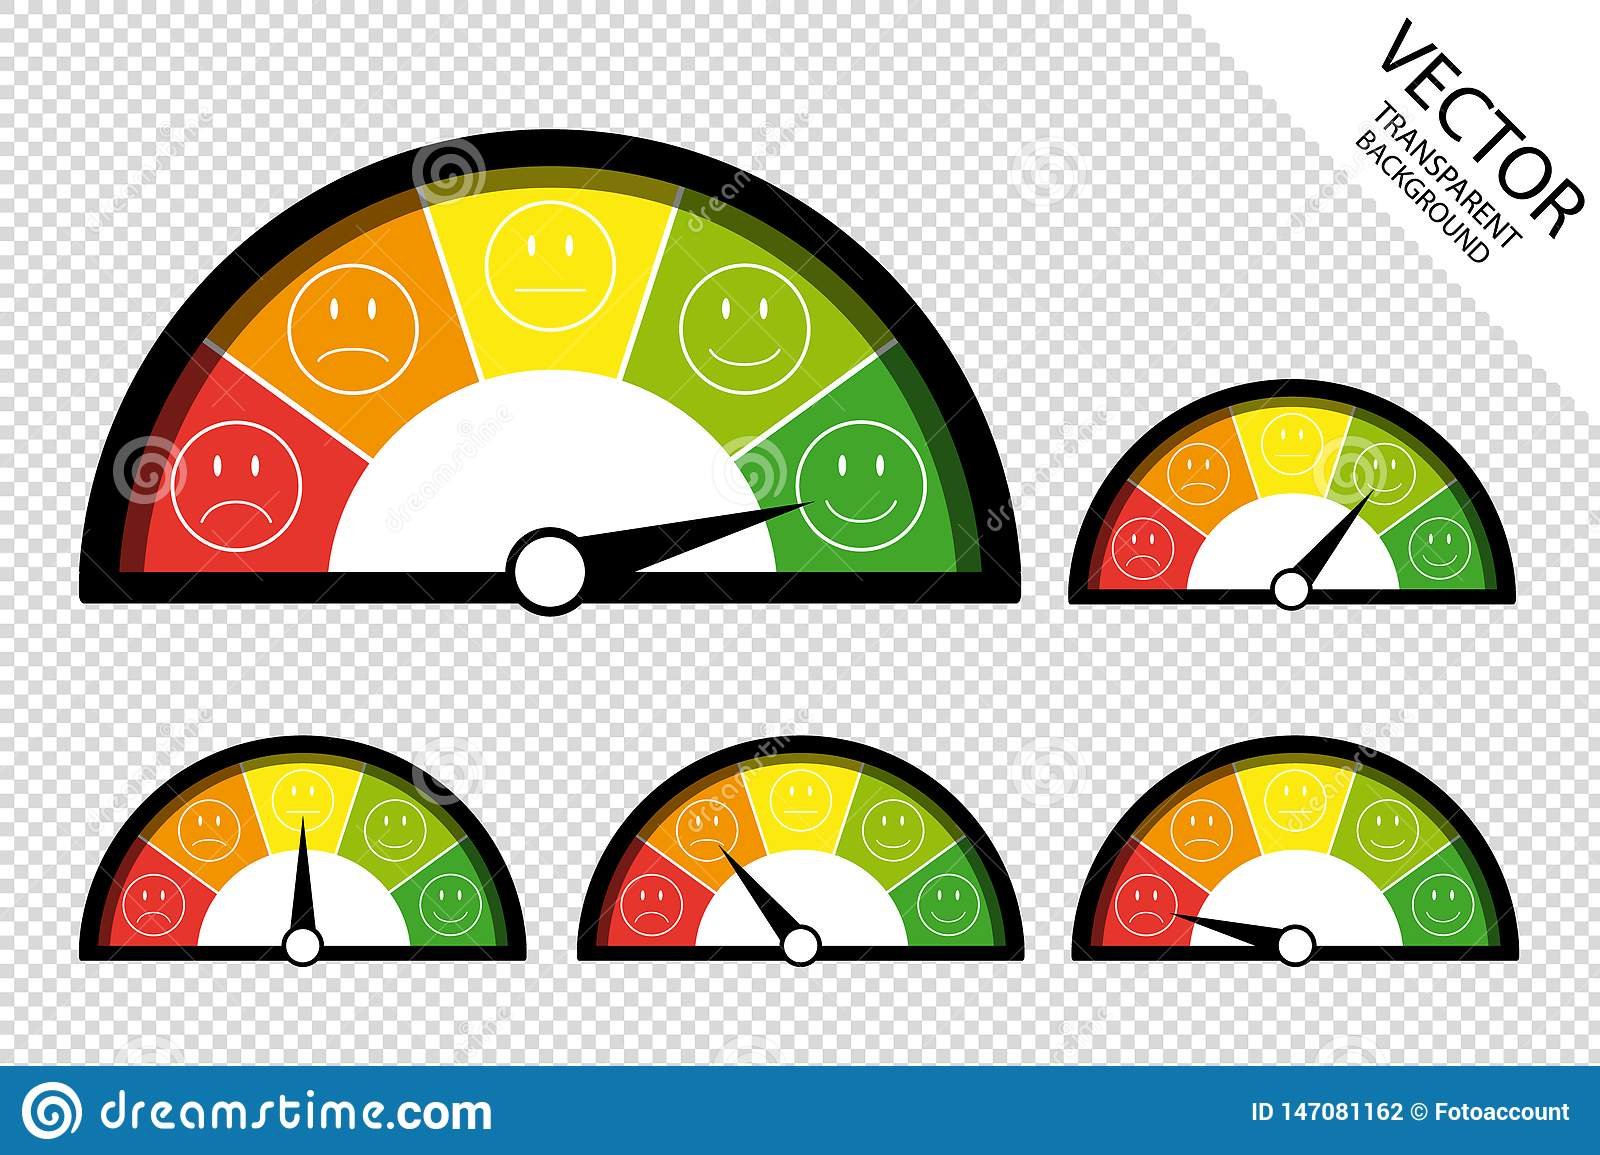 Feedback Speedometer, Customer Satisfaction Meter, Product Rating Icons - Vector Illustration Isolated On Transparent Background